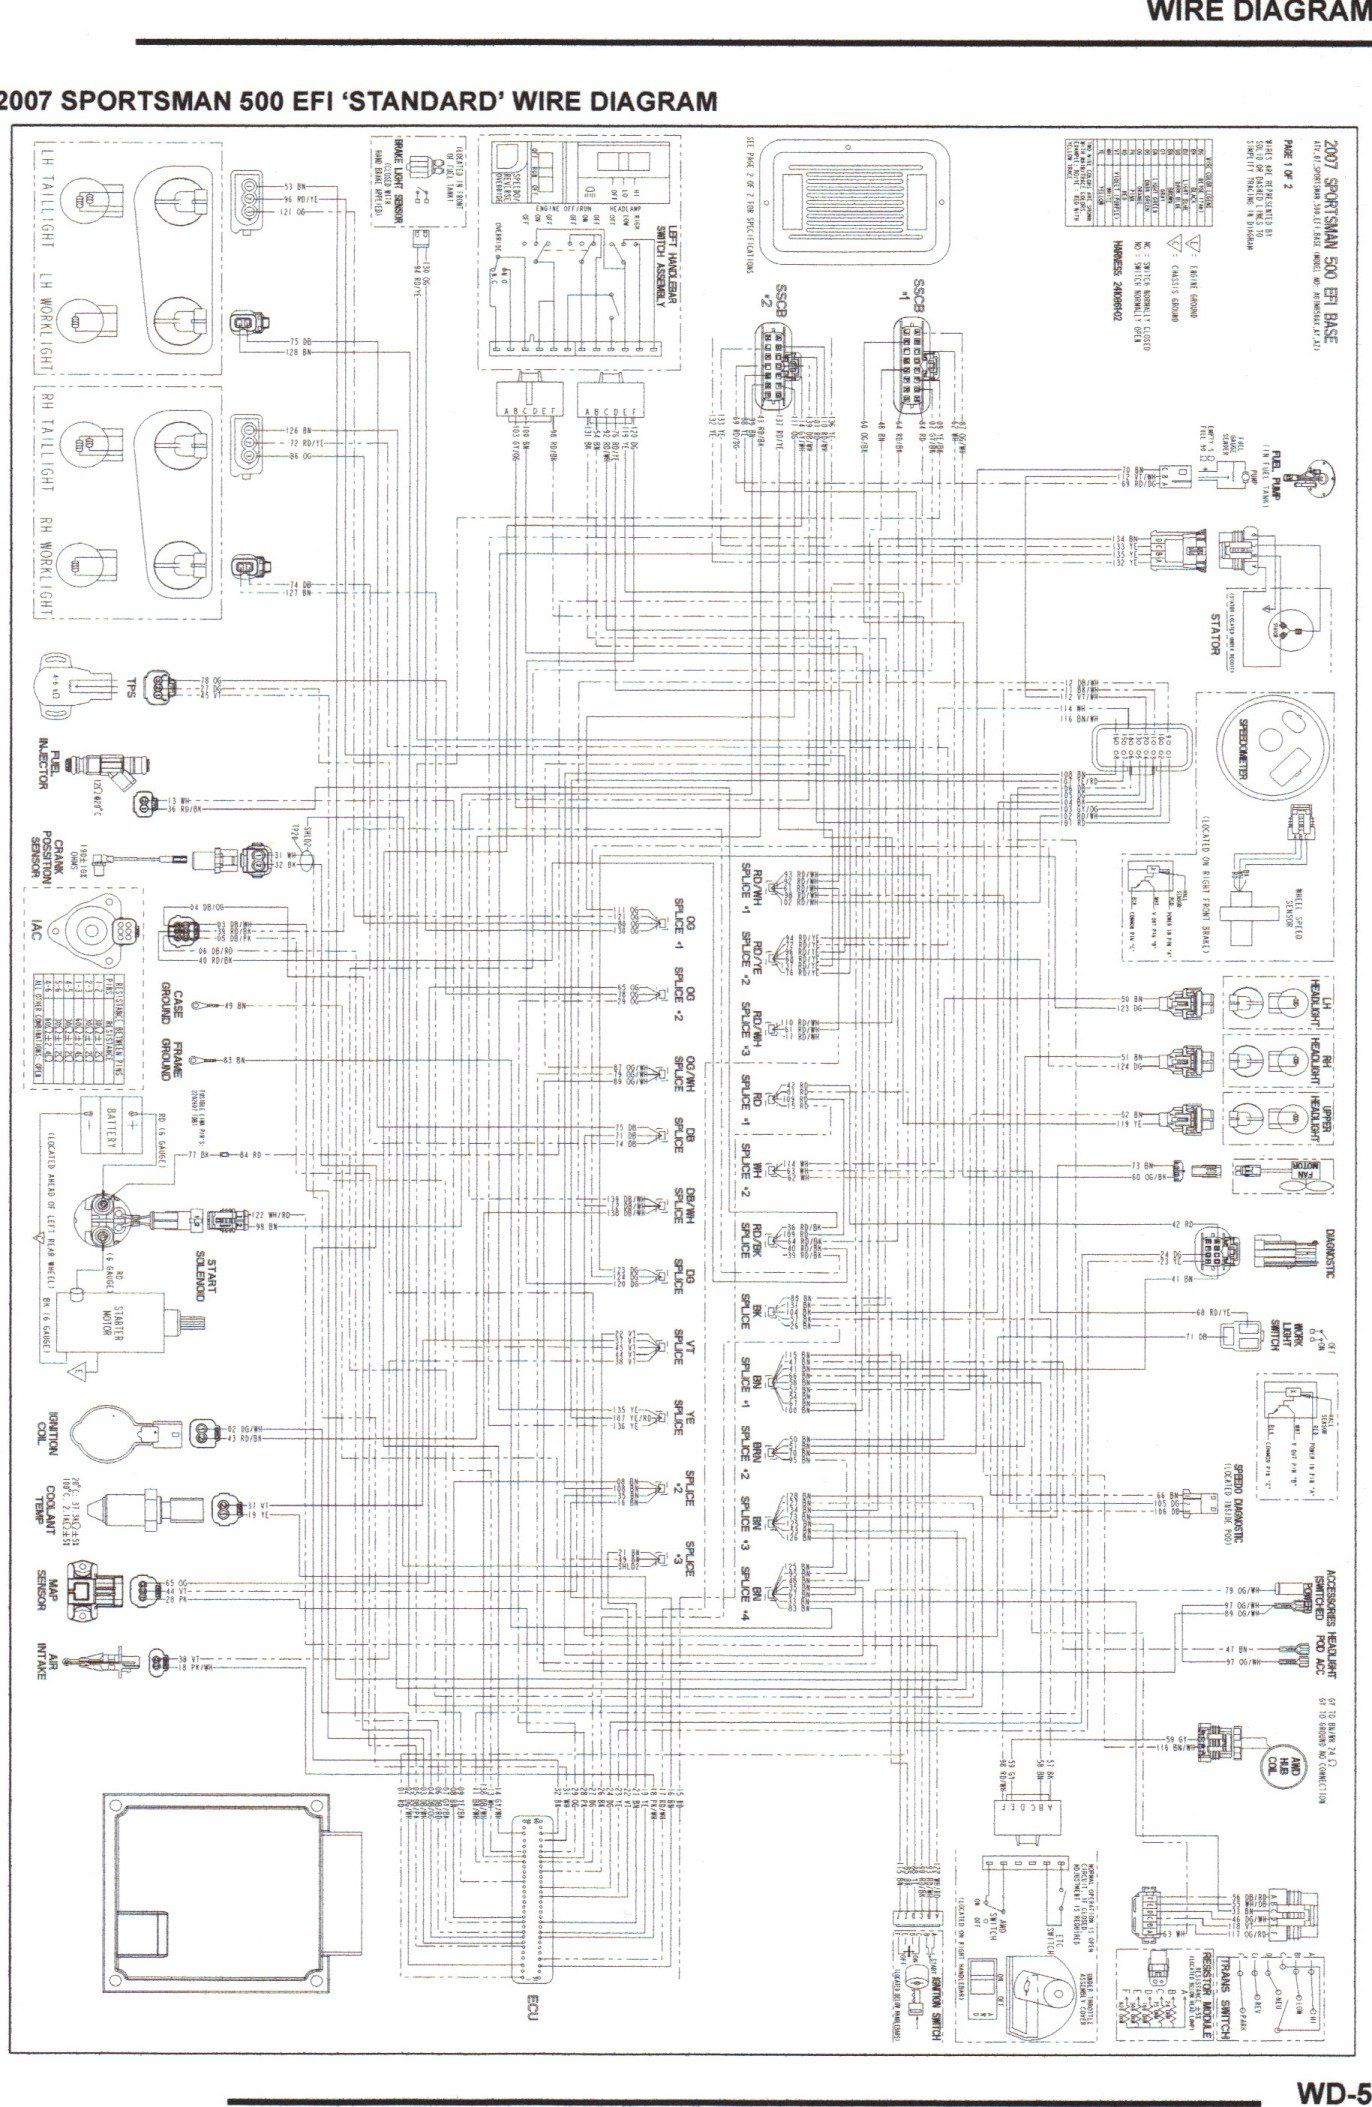 Comfortable 2004 Polaris Sportsman Wiring Diagram Images With ... on polaris engine diagram, polaris ev will not charge, polaris snowmobile wiring diagrams, polaris 700 atv battery, polaris 600 wiring diagram, polaris atv carburetor adjustment, polaris ranger 700 wiring diagram, polaris indy 600 voltage regulator placement, polaris 90 wiring diagram, polaris choke cable parts, polaris atv diagrams, polaris indy 400 wiring diagram, polaris explorer 400 wiring diagram, polaris phoenix 200 wiring diagram, polaris ranger 400 accessories, polaris carburetor diagram, polaris parts diagram, polaris solenoid wiring diagram, polaris ignition wiring diagram, polaris scrambler 400 wiring diagram,